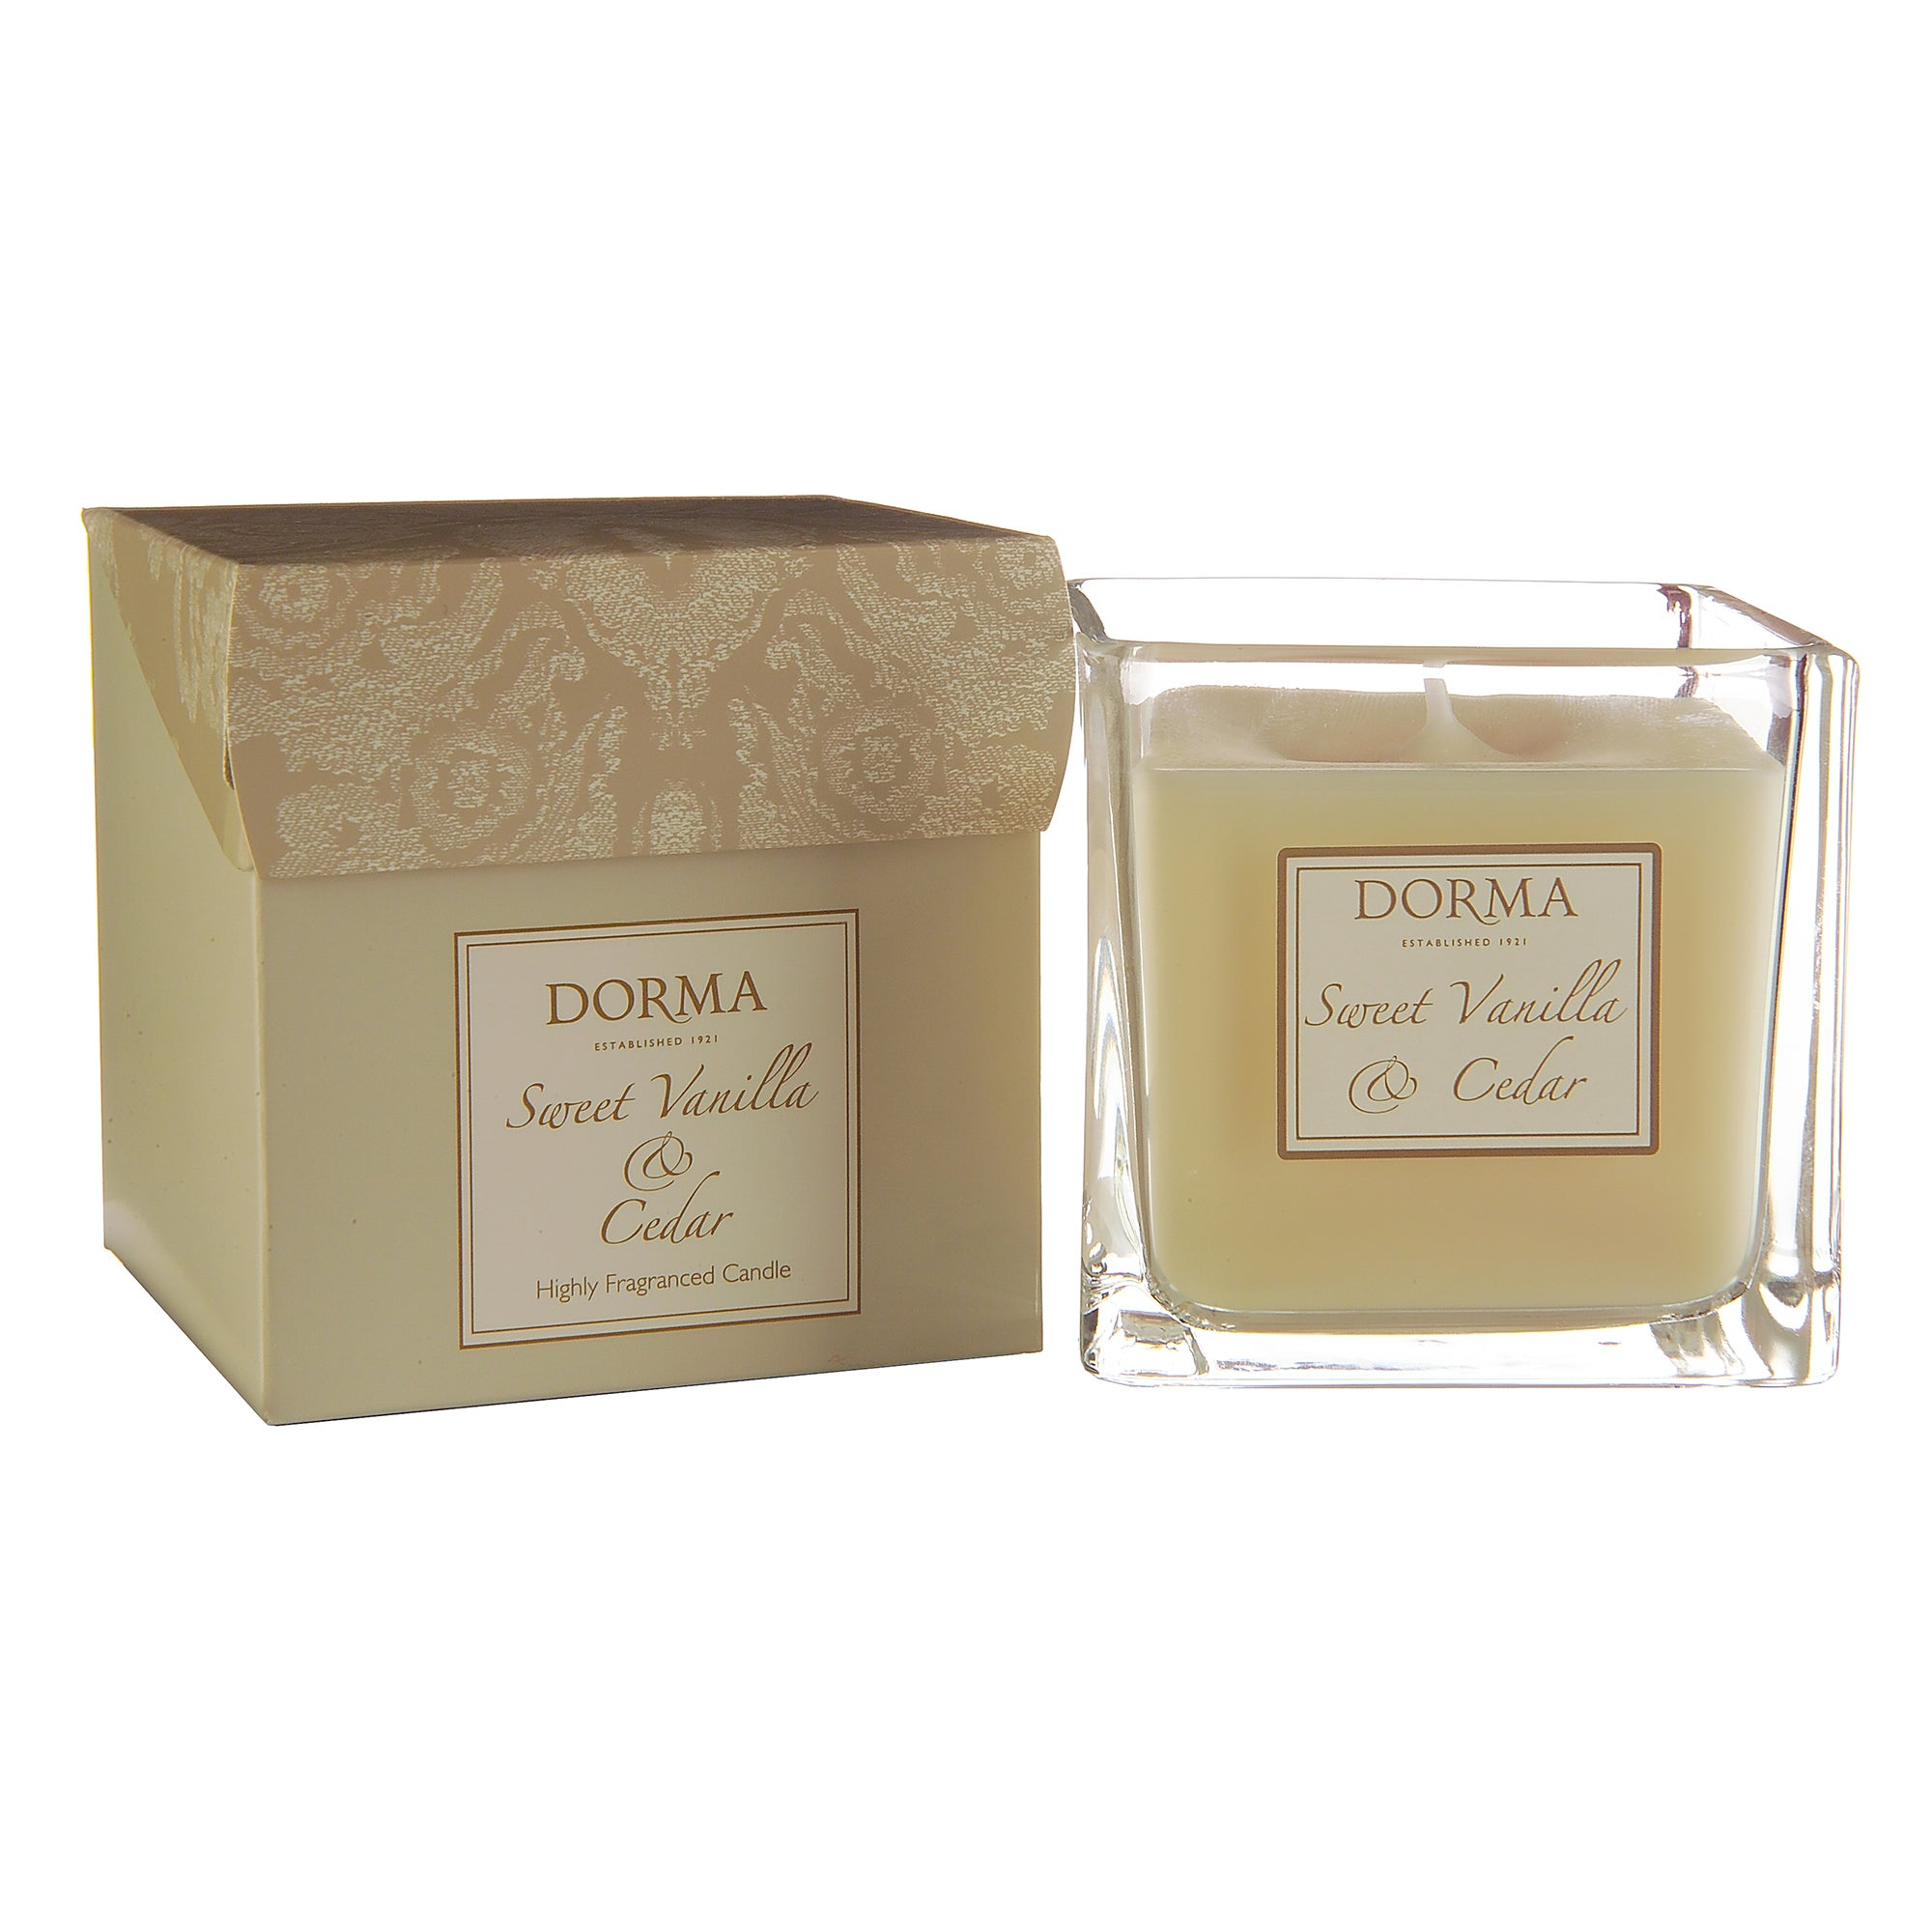 Dorma Sweet Vanilla and Cedar Wax Filled Glass Candle